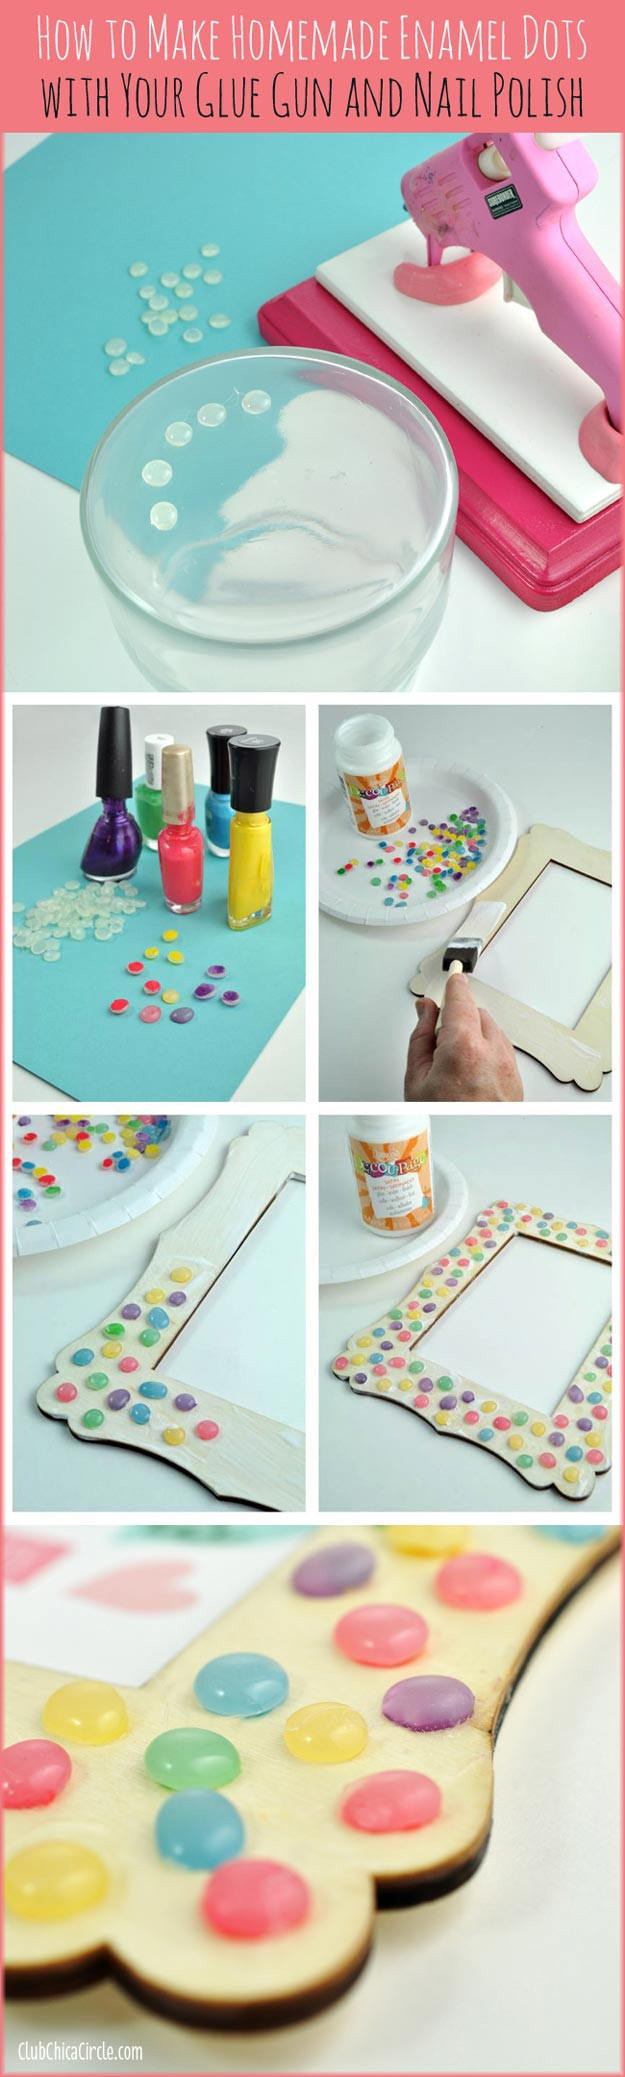 Best ideas about DIY Craft Projects For Adults . Save or Pin 31 Incredibly Cool DIY Crafts Using Nail Polish Now.